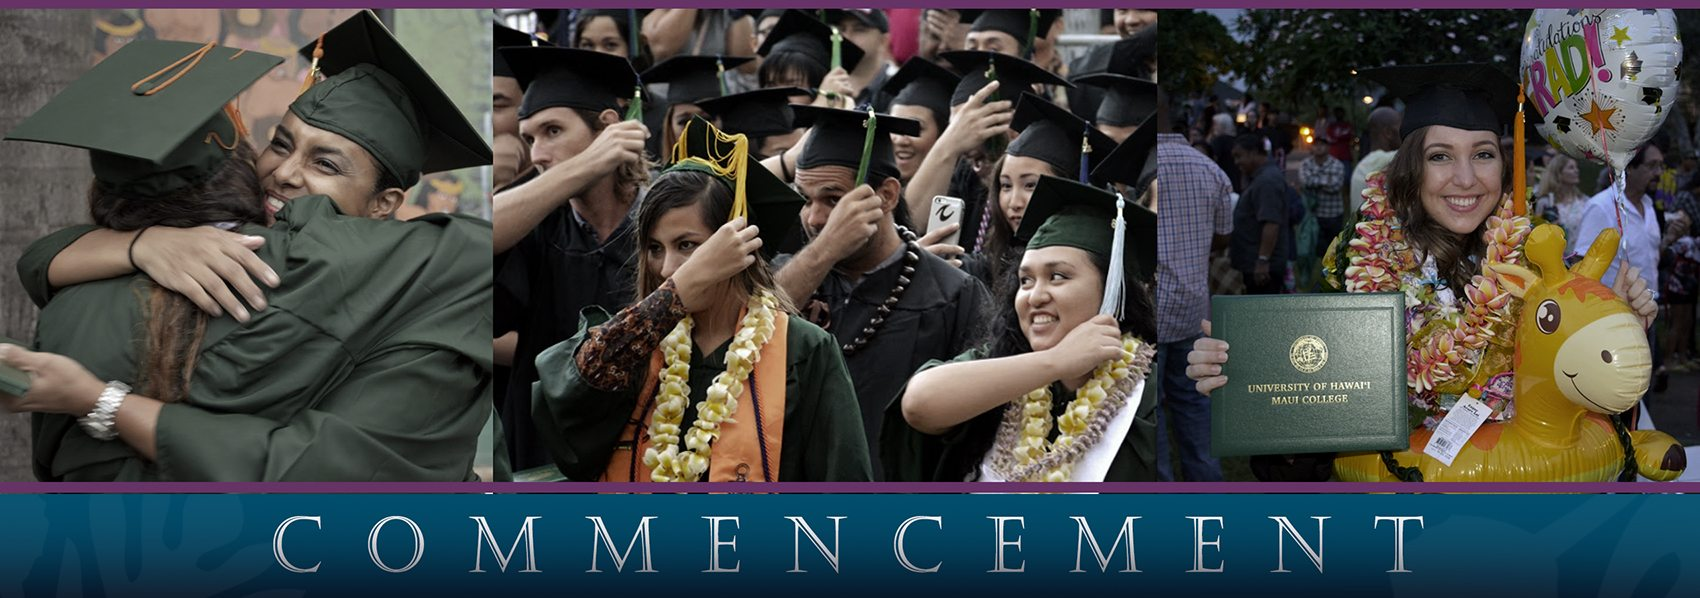 Commencement header